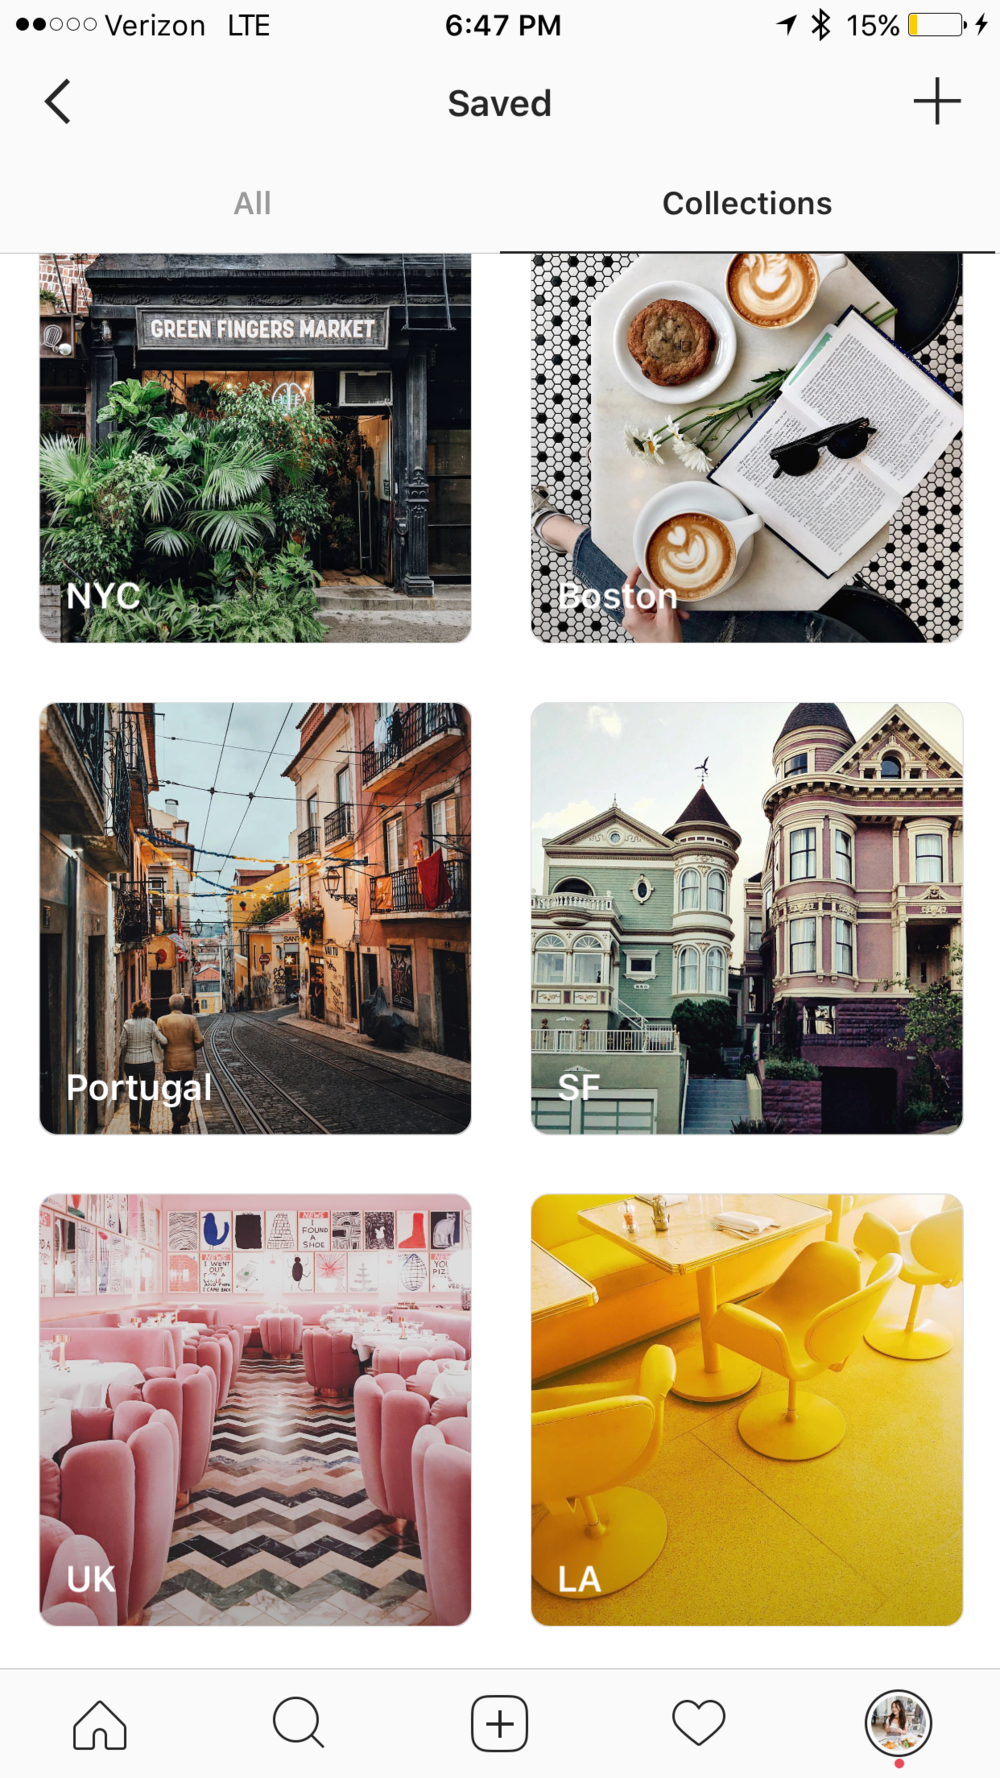 INSTAGRAM COLLECTIONS - Whenever I see something on IG that I want to taste, see, or stay at, I archive it in a collection by city.